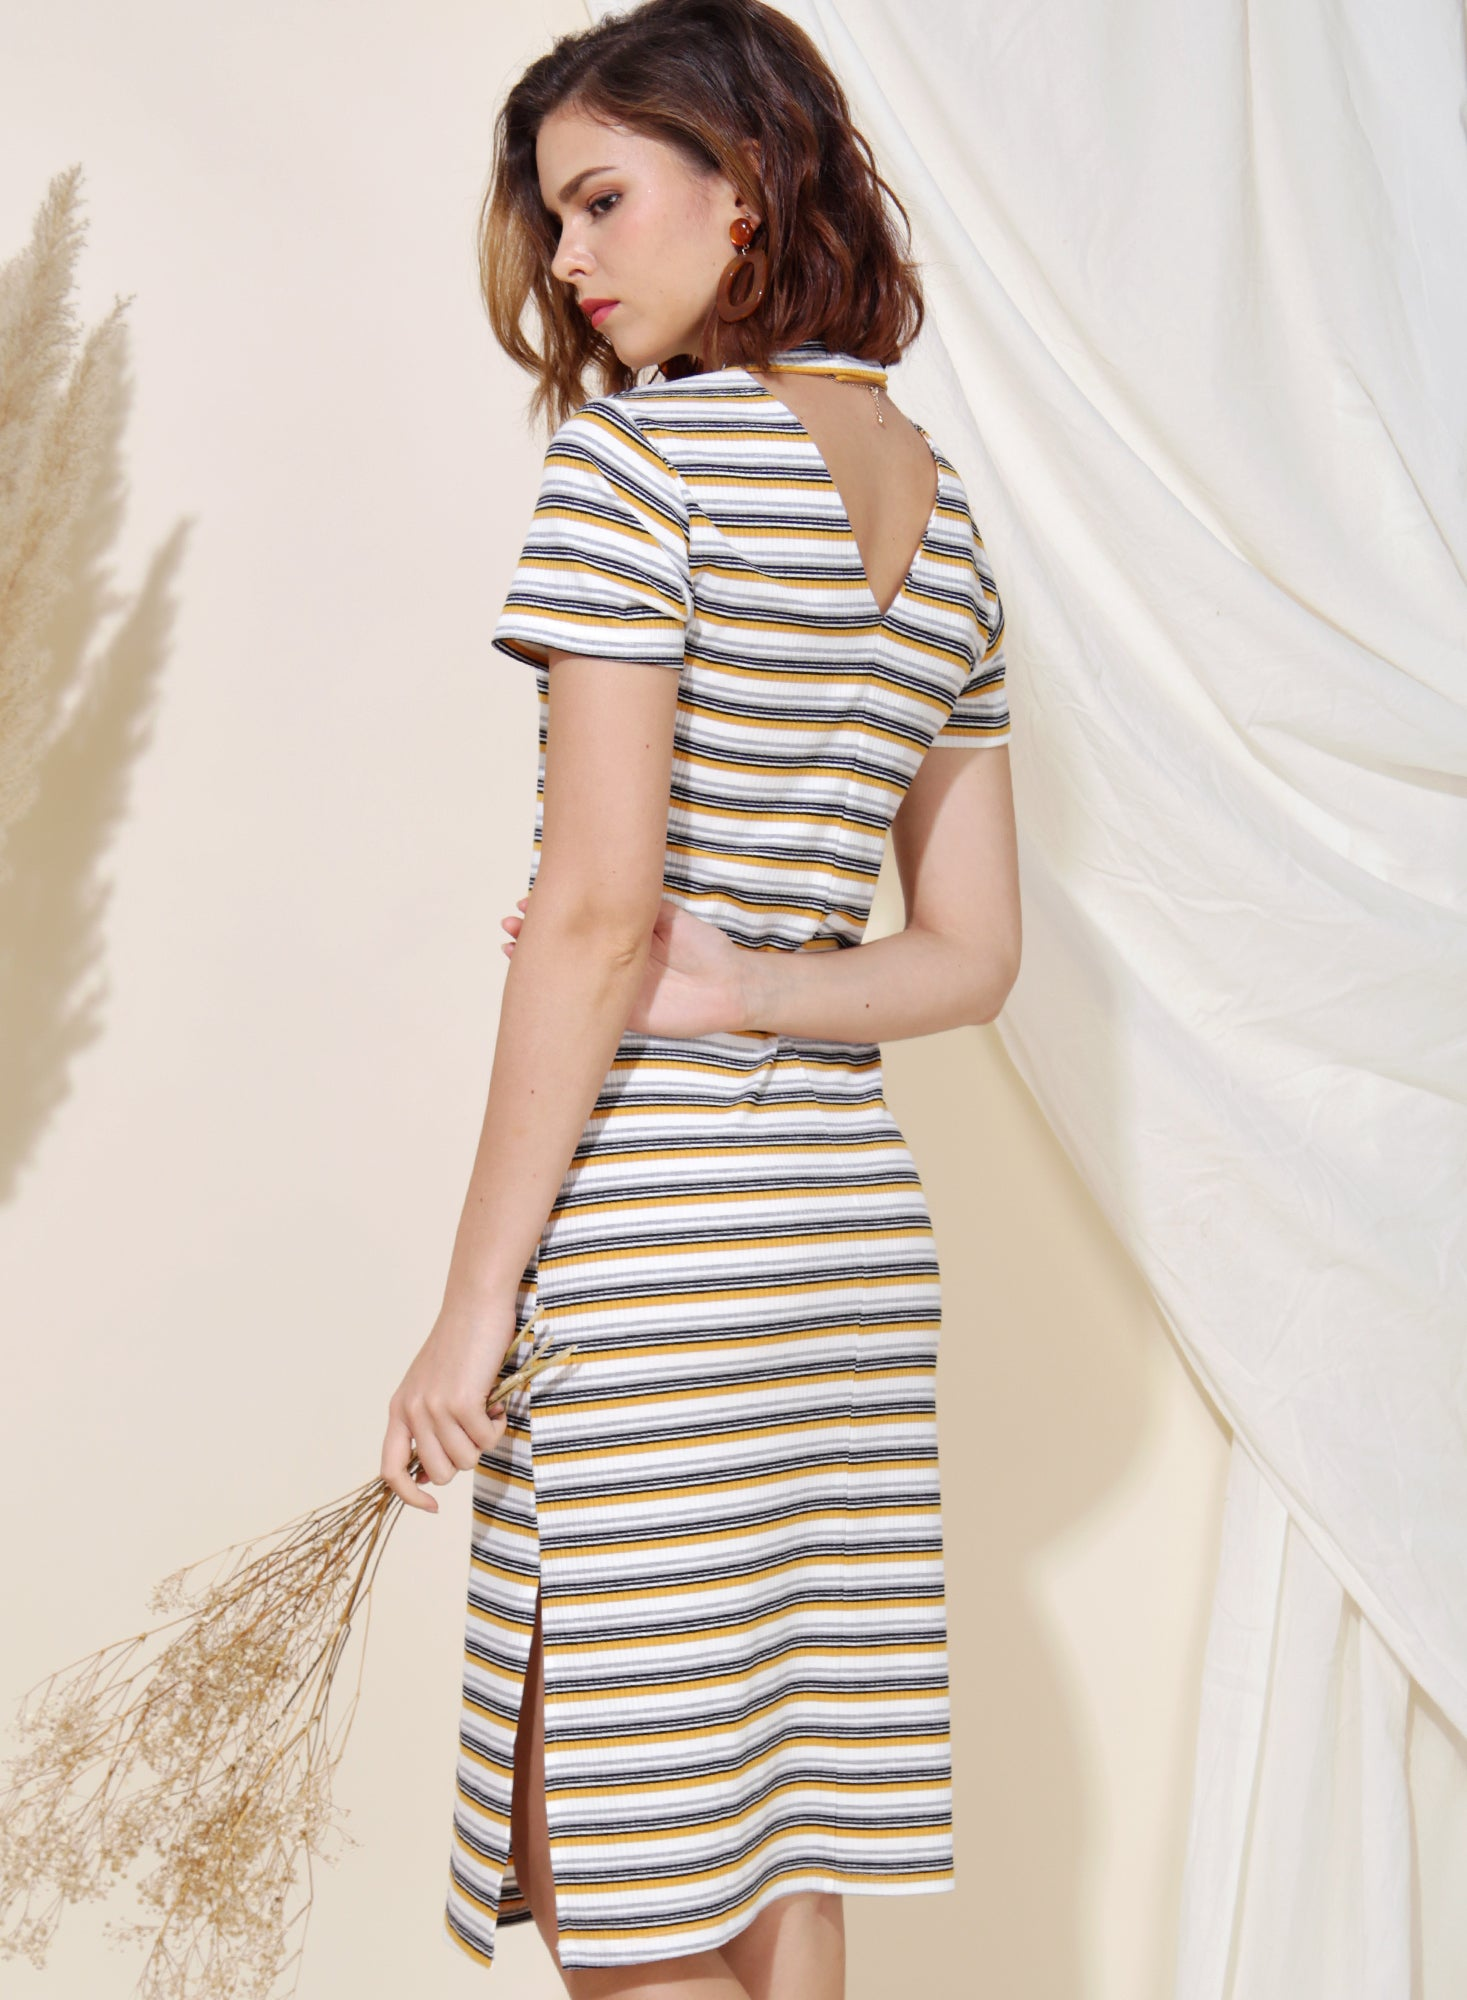 Revolve Ribbed Knit Midi Dress (Yellow Stripes) at $ 39.90 only sold at And Well Dressed Online Fashion Store Singapore